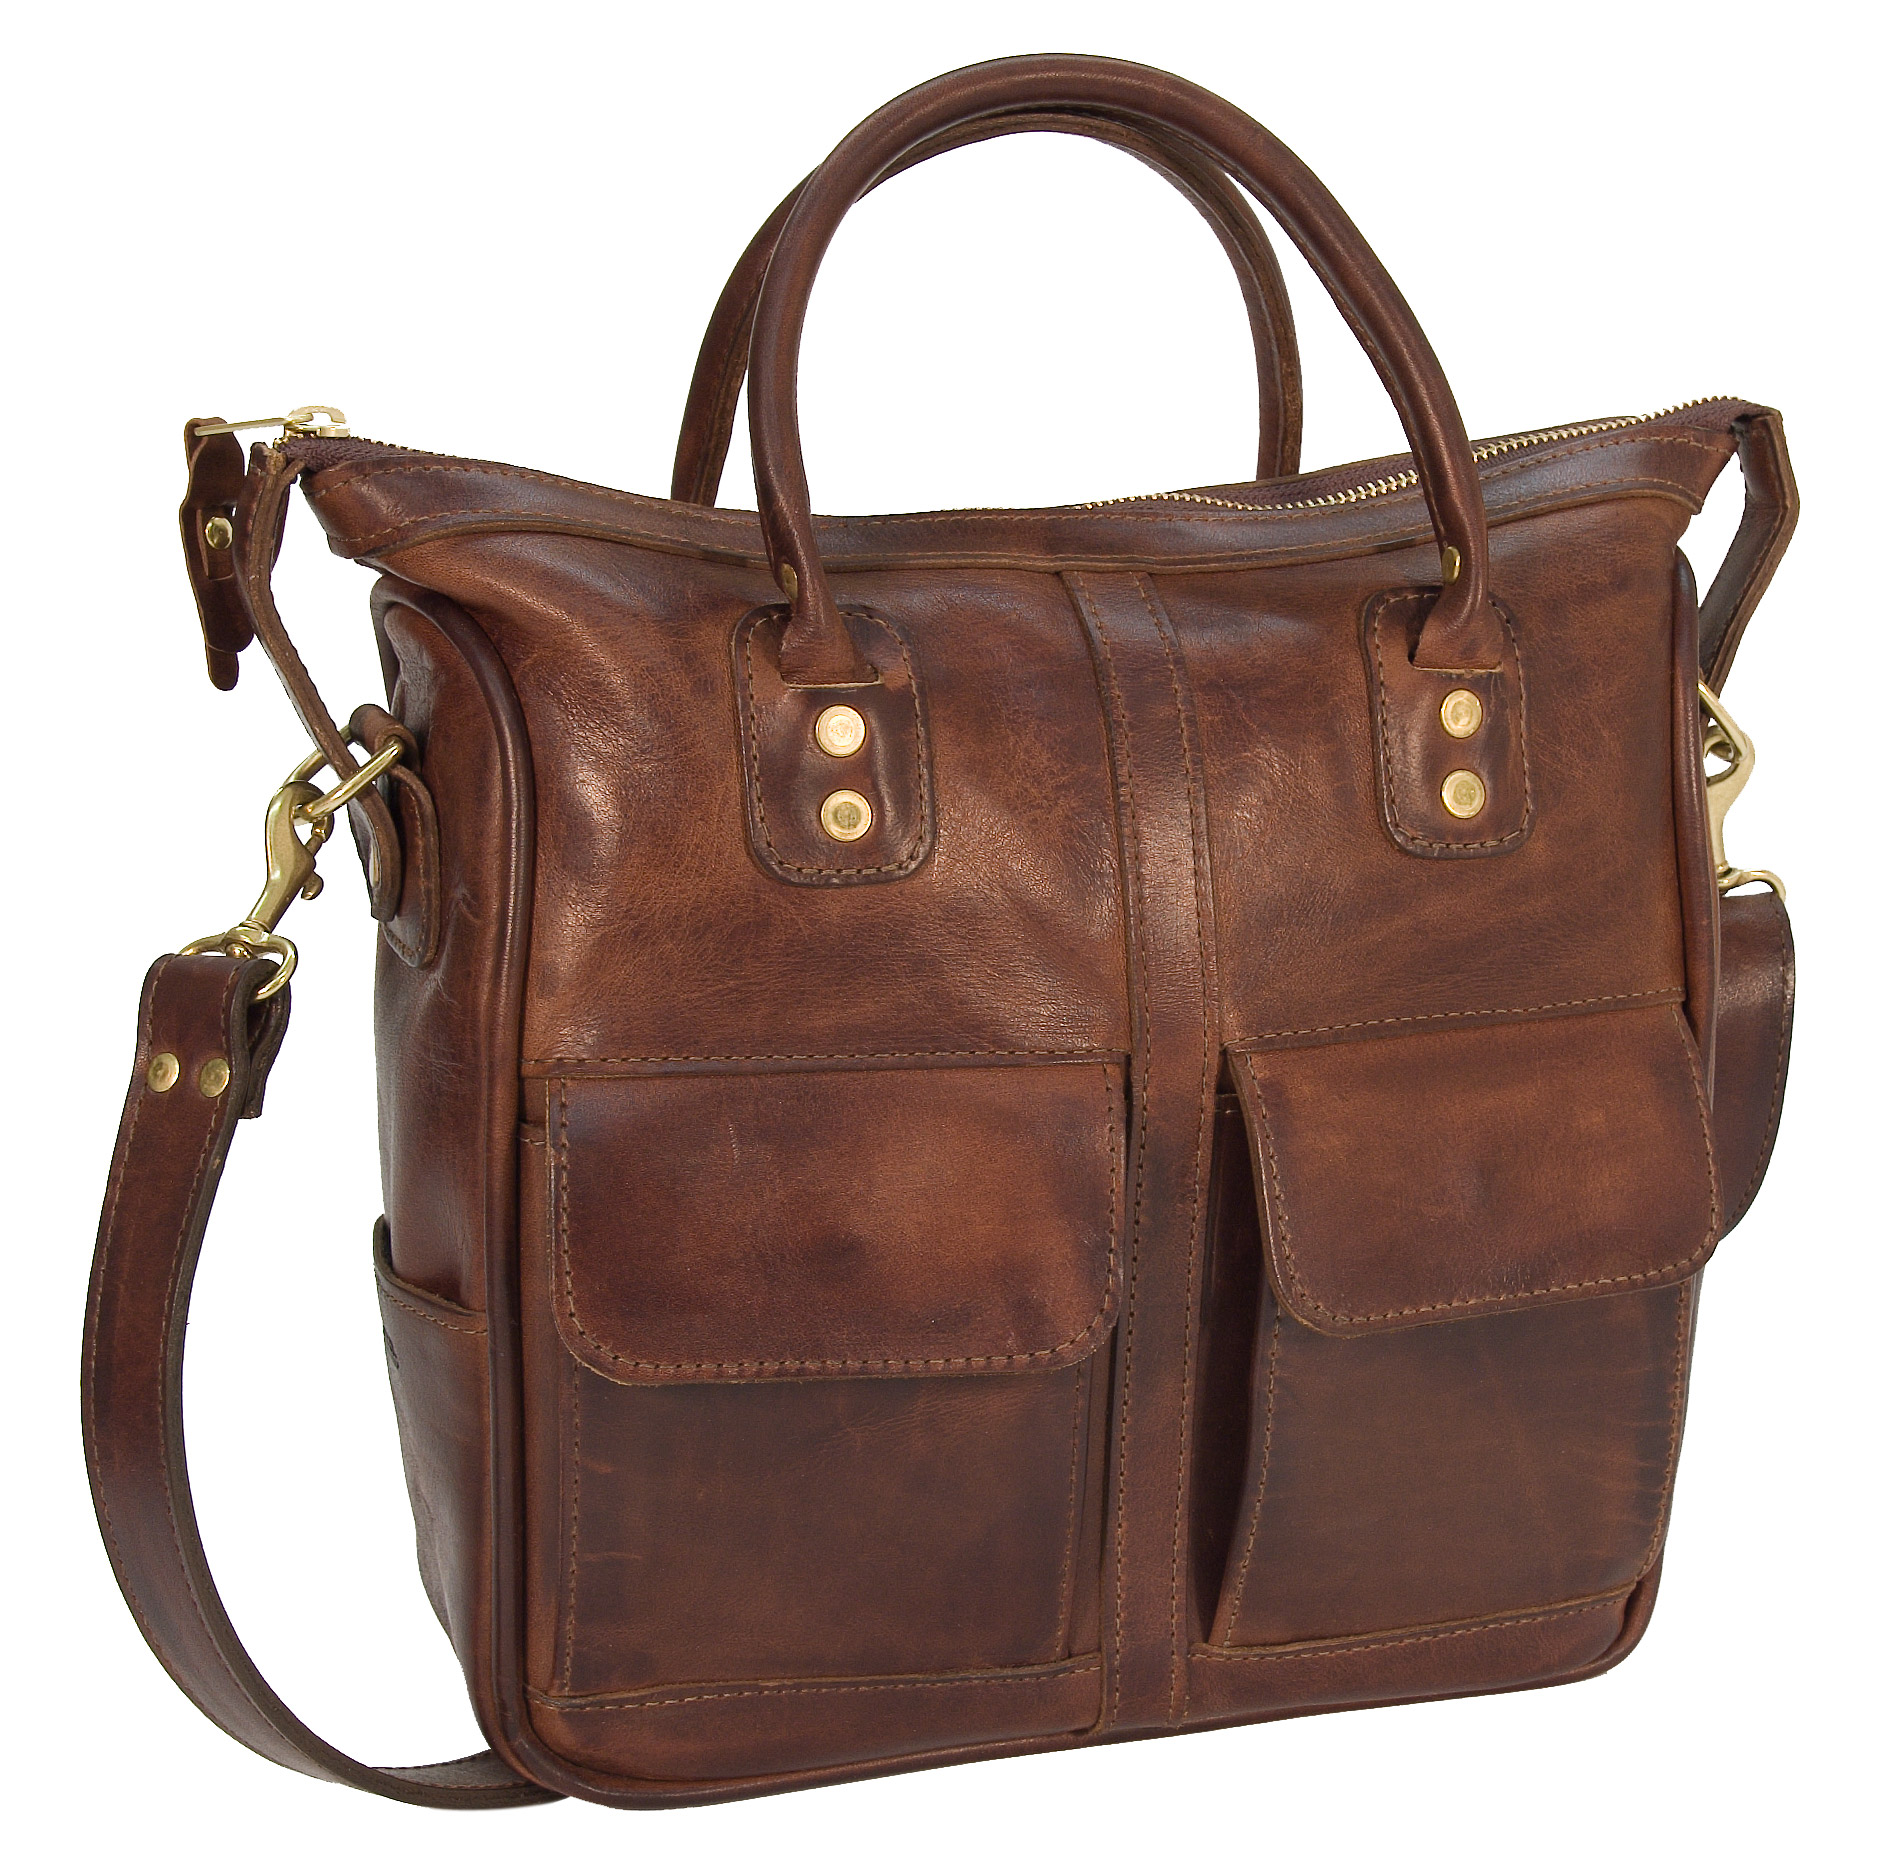 Leatherbags If You Have A Leather Handbag